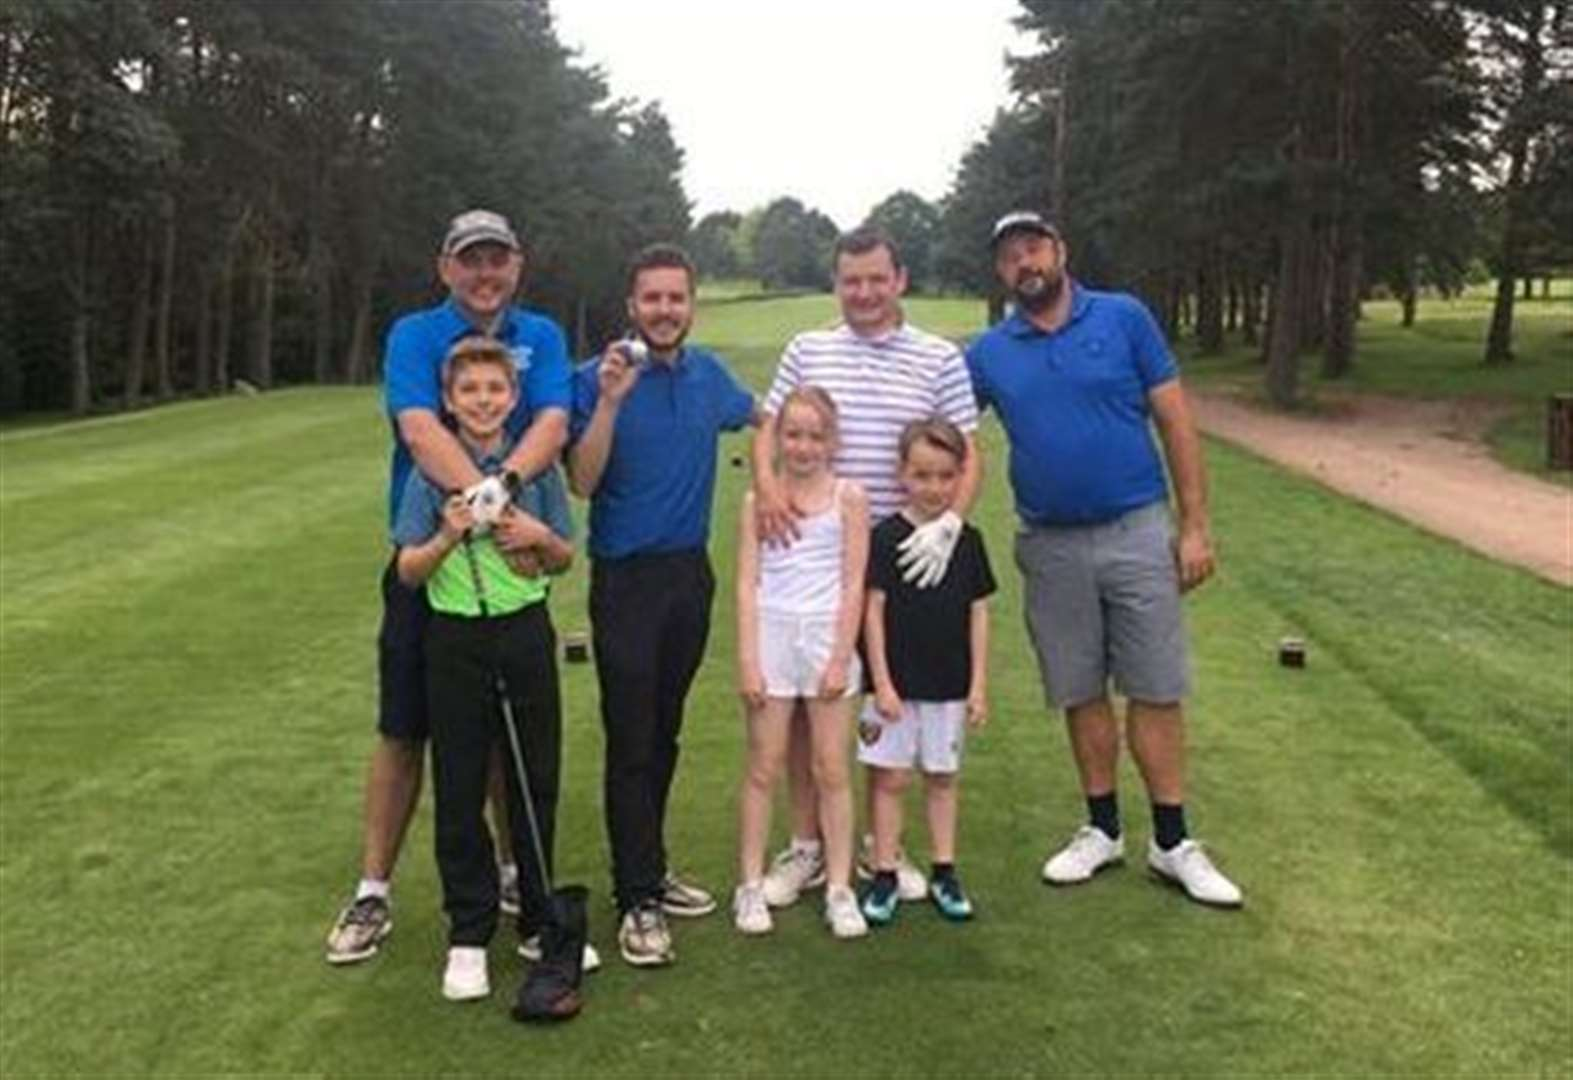 Stortford golfing buddies take on 72-hole challenge for Macmillan Cancer Support